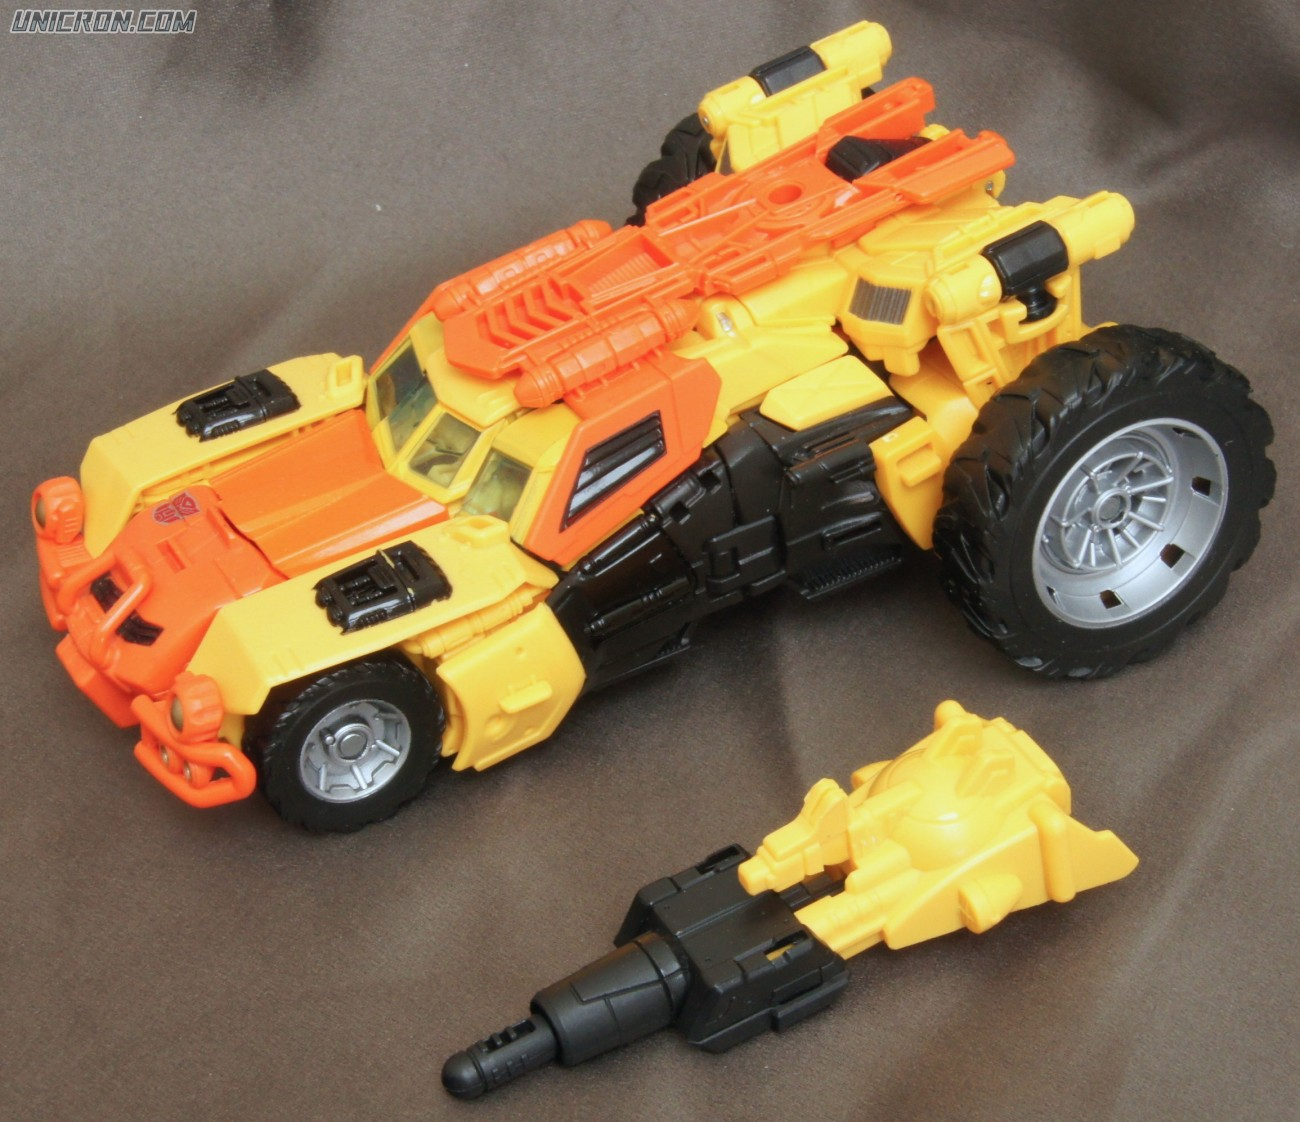 Transformers Generations Sandstorm toy